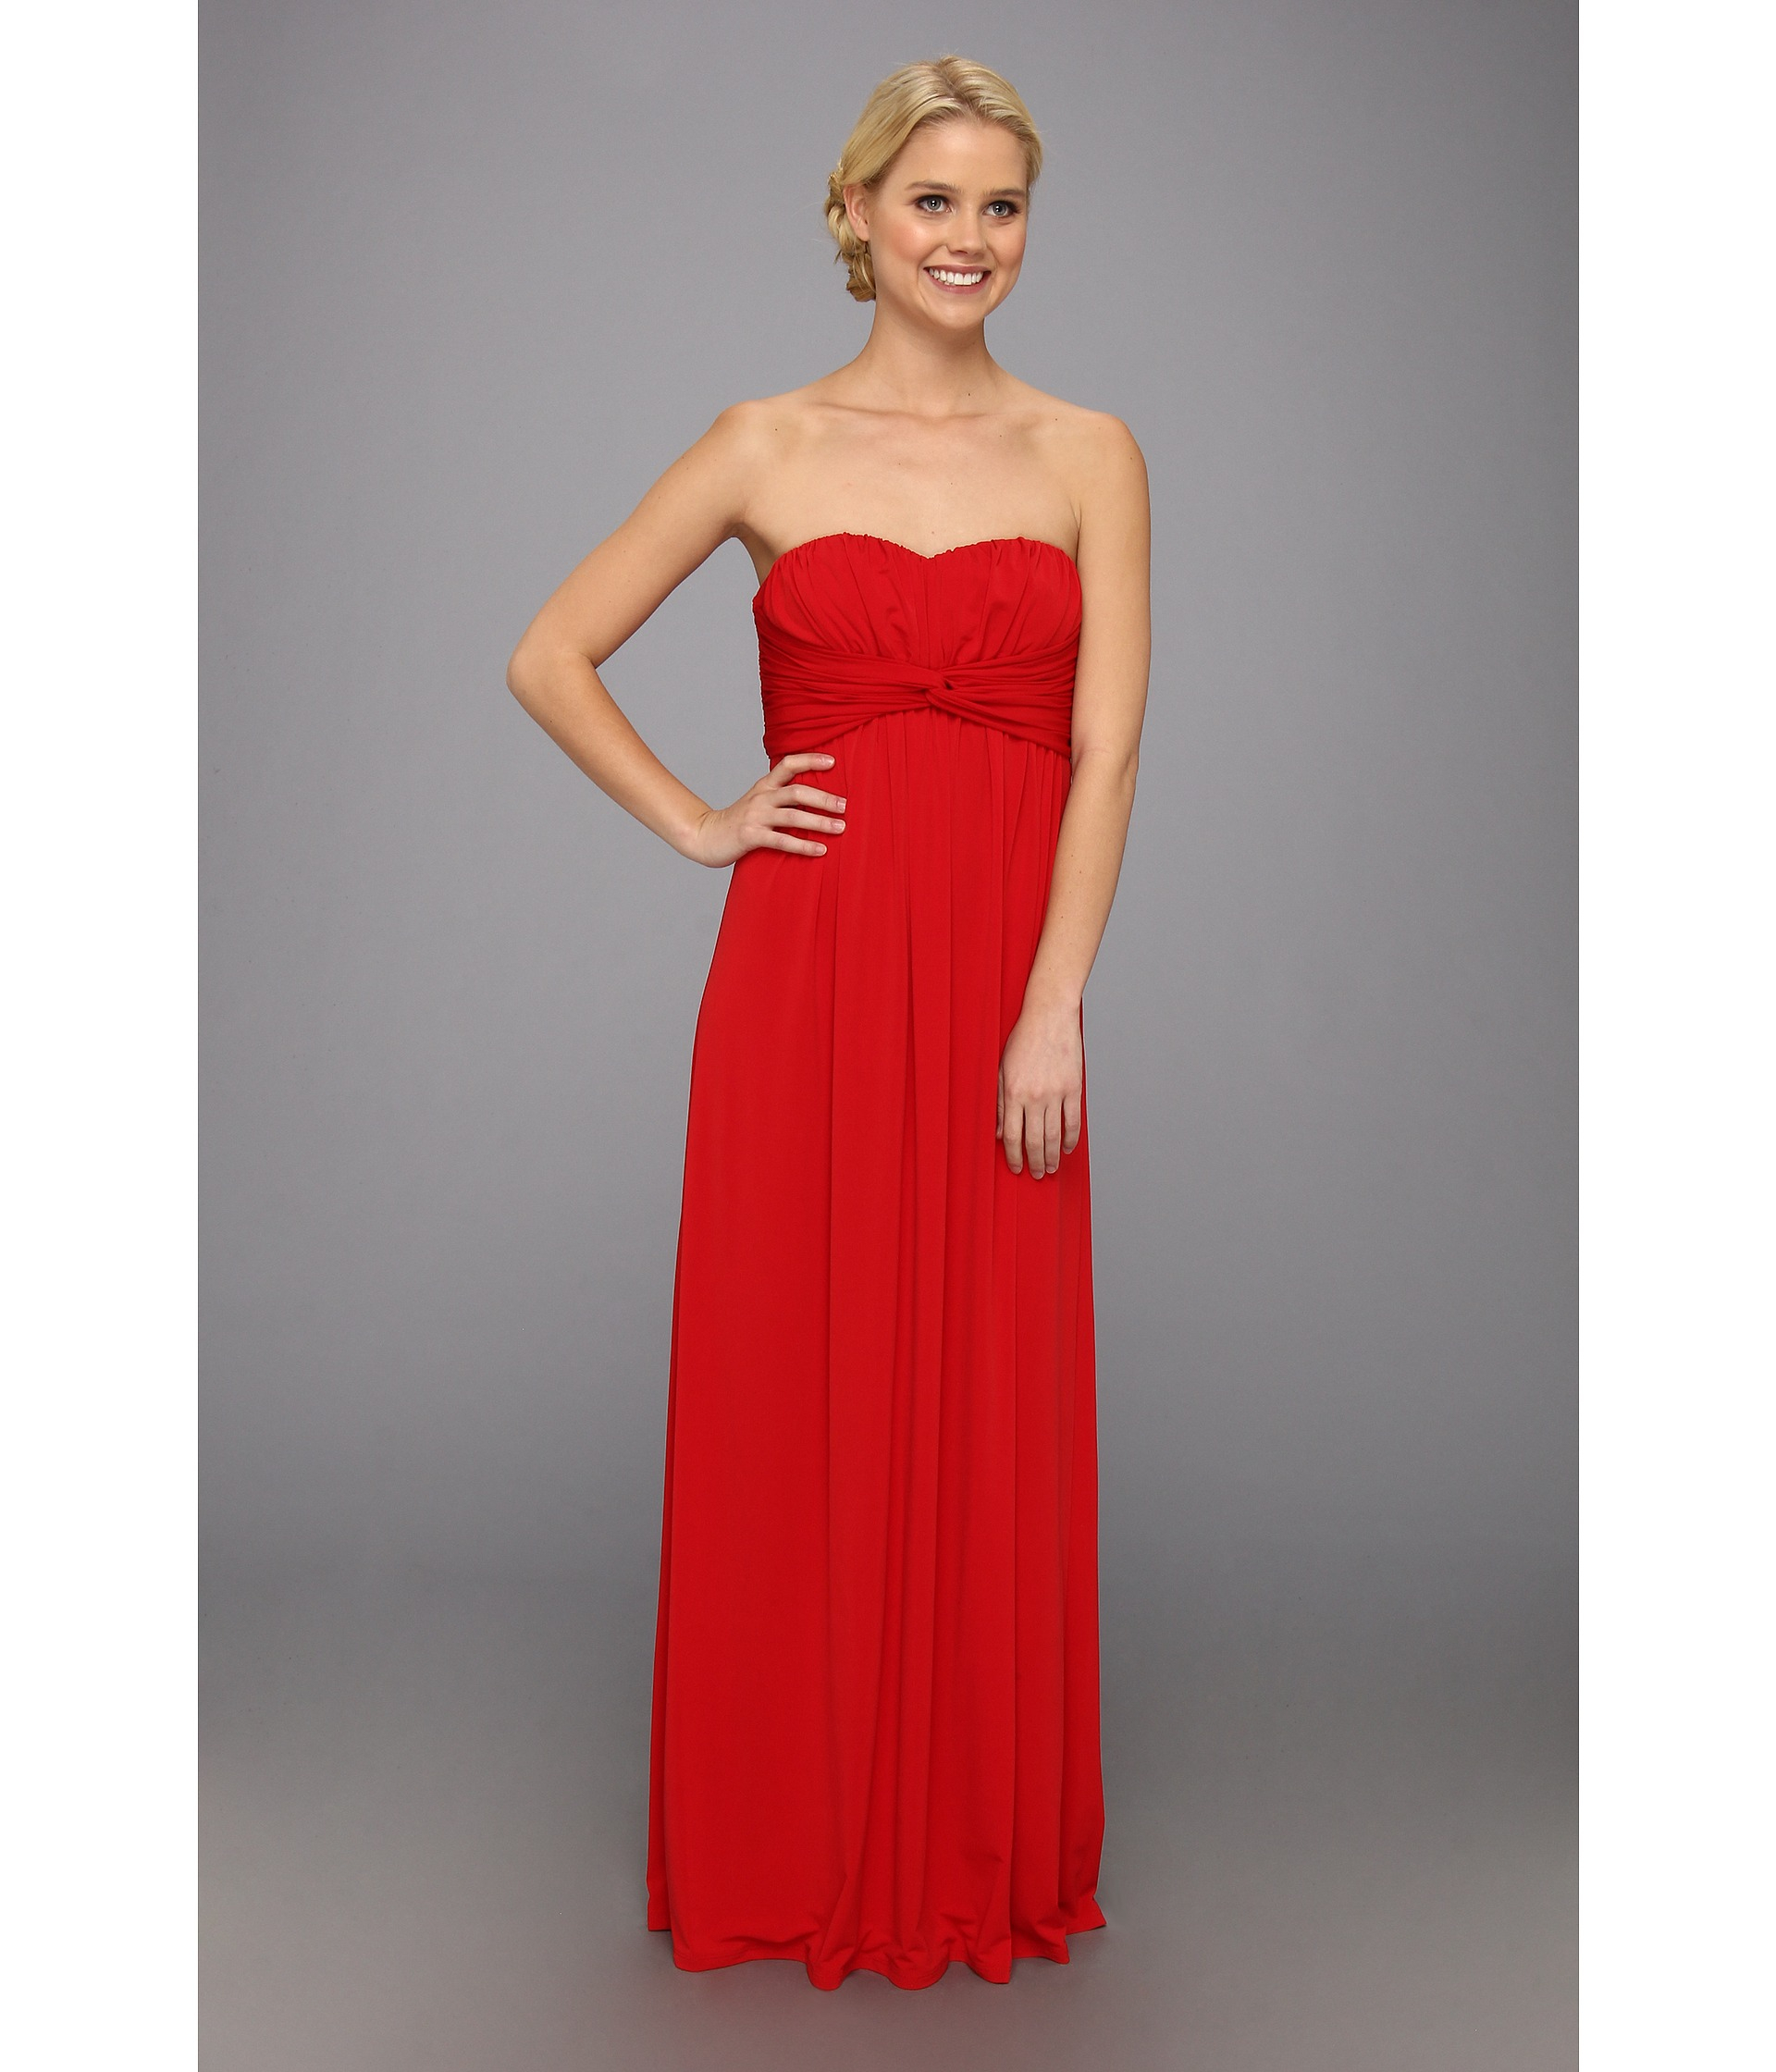 Lyst - Jessica Simpson Twist Bust Maxi Gown in Red